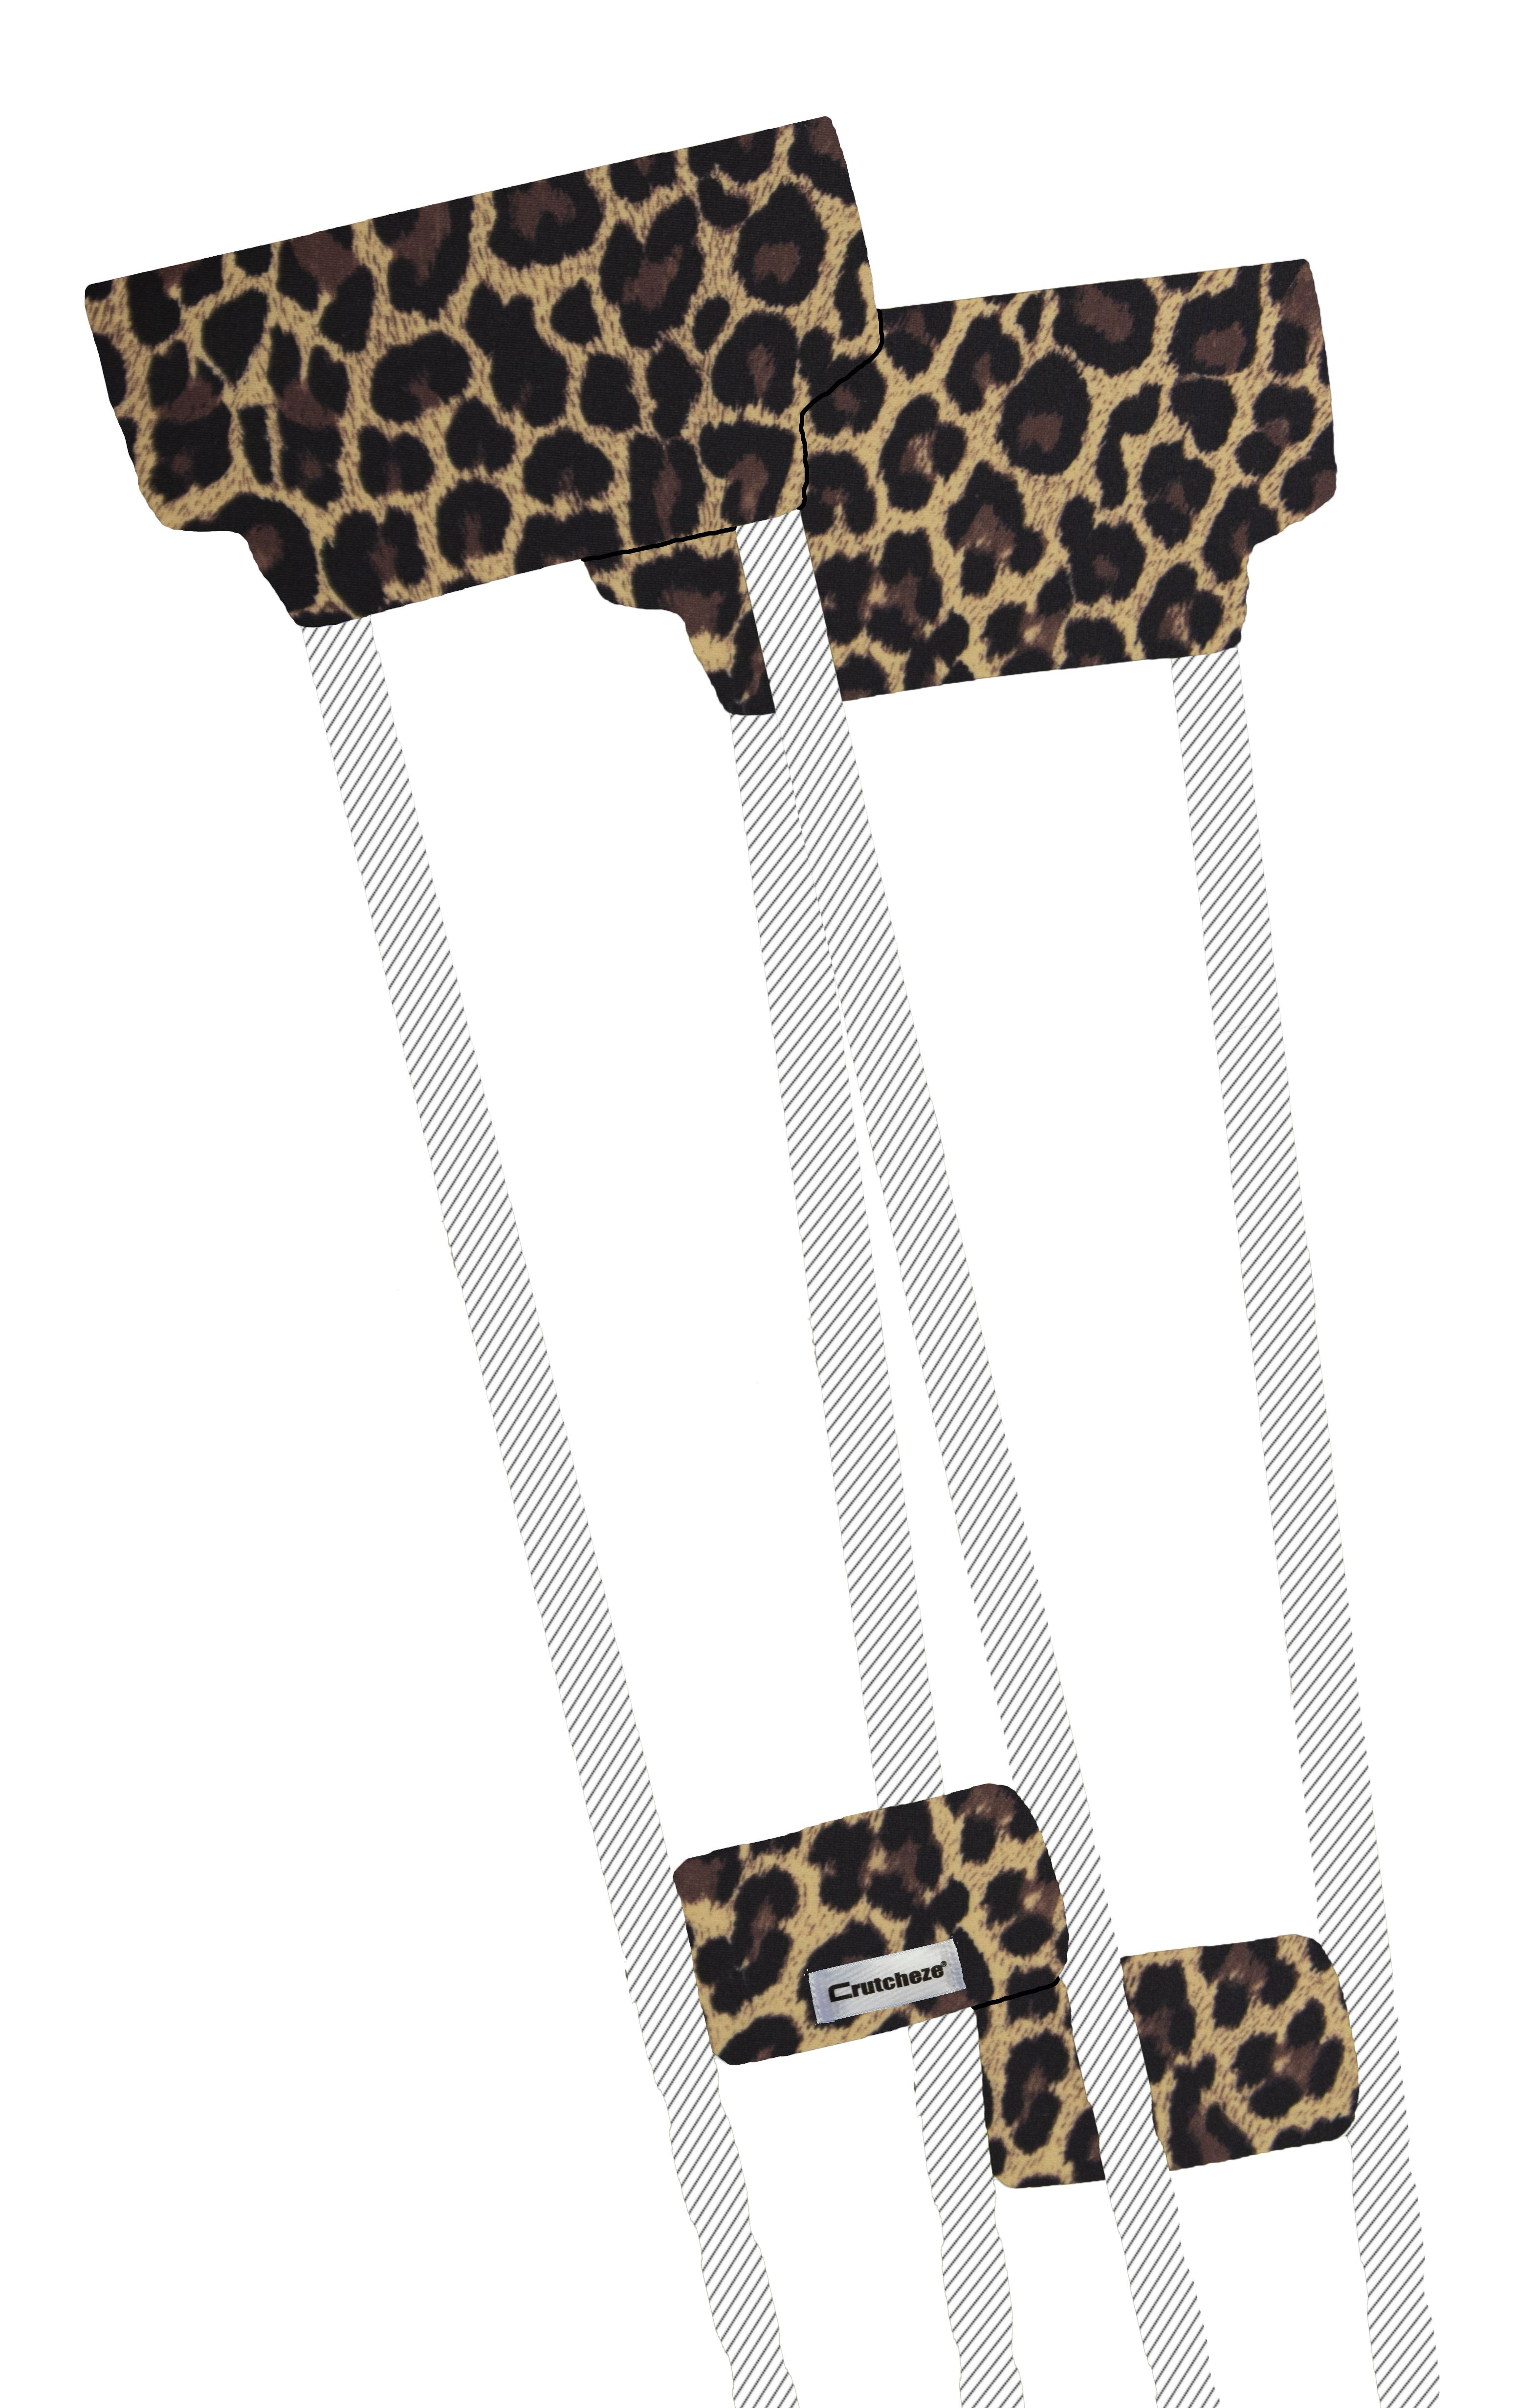 Crutch Pads Hand Grip Covers Antibacterial In 2020 Crutch Pad Crutch Pad Covers Pad